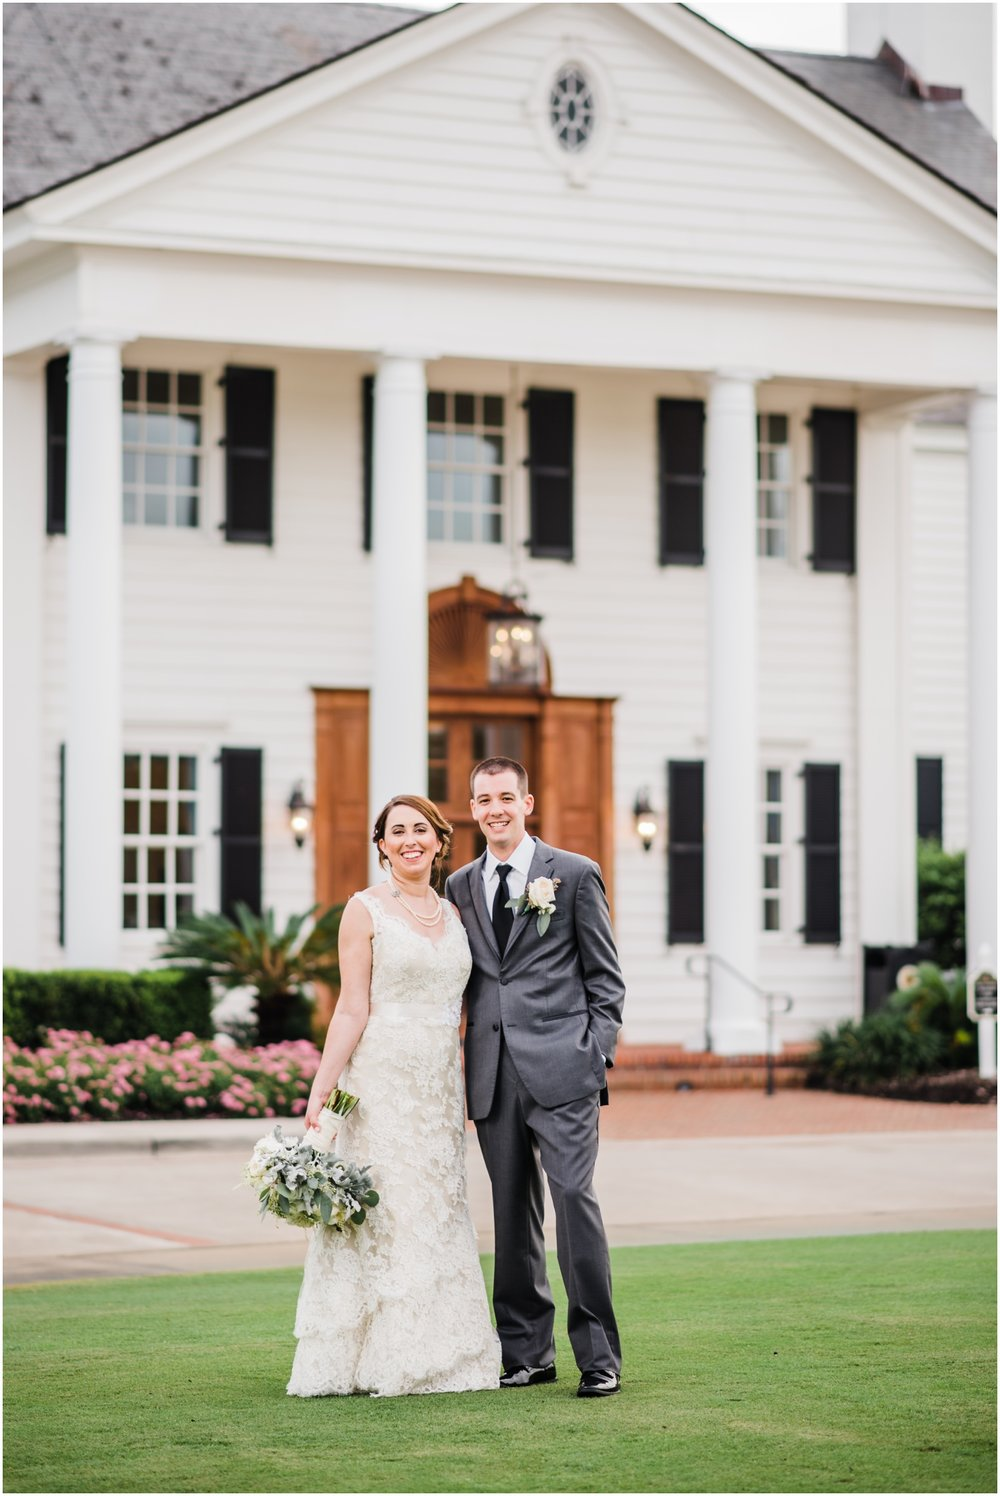 Pine-Lakes-Golf-and-Country-Club-Wedding-Myrtle-Beach-SC-Sarah-and-Colby-632.jpg